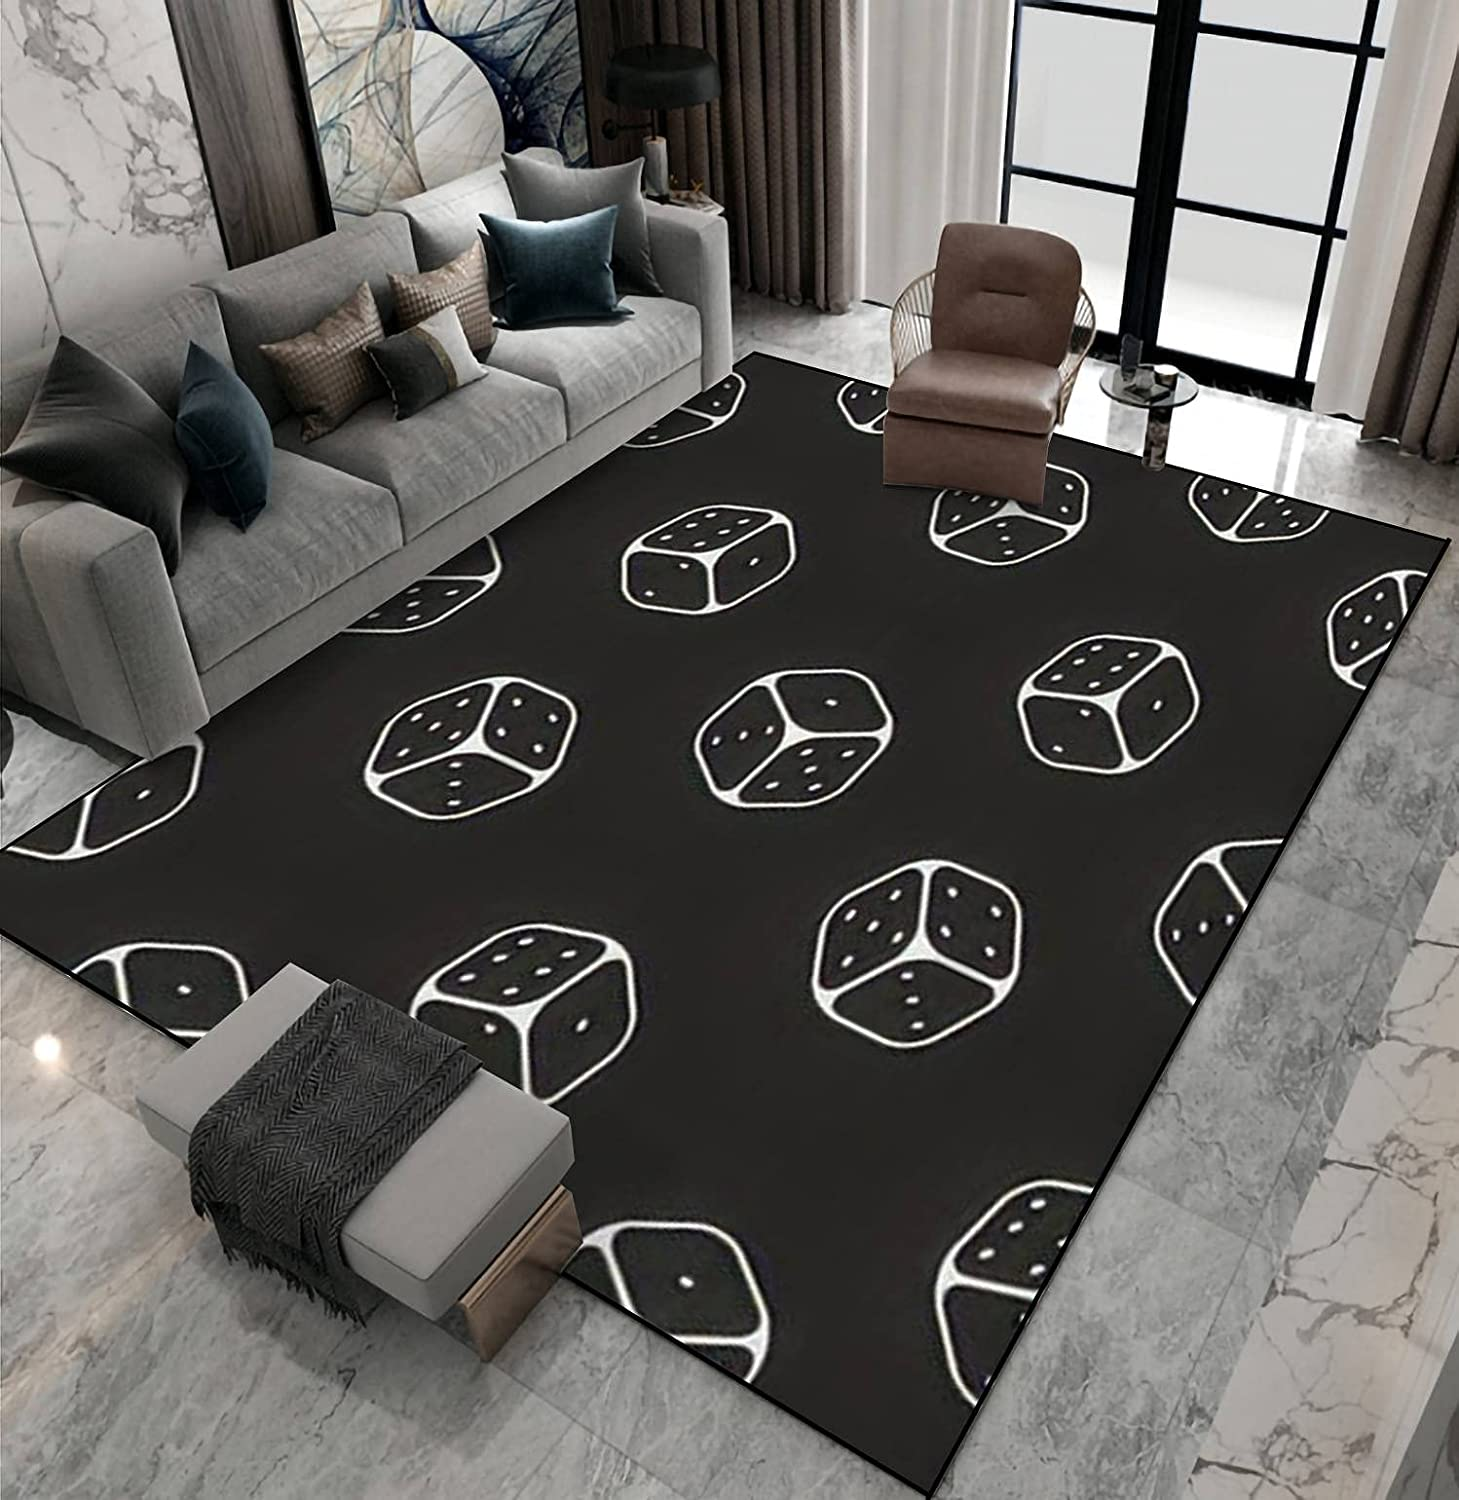 Area Rug Non-Slip Floor Mat Dealing full price reduction Dice line Seamless Mon Chicago Mall Icons Pattern